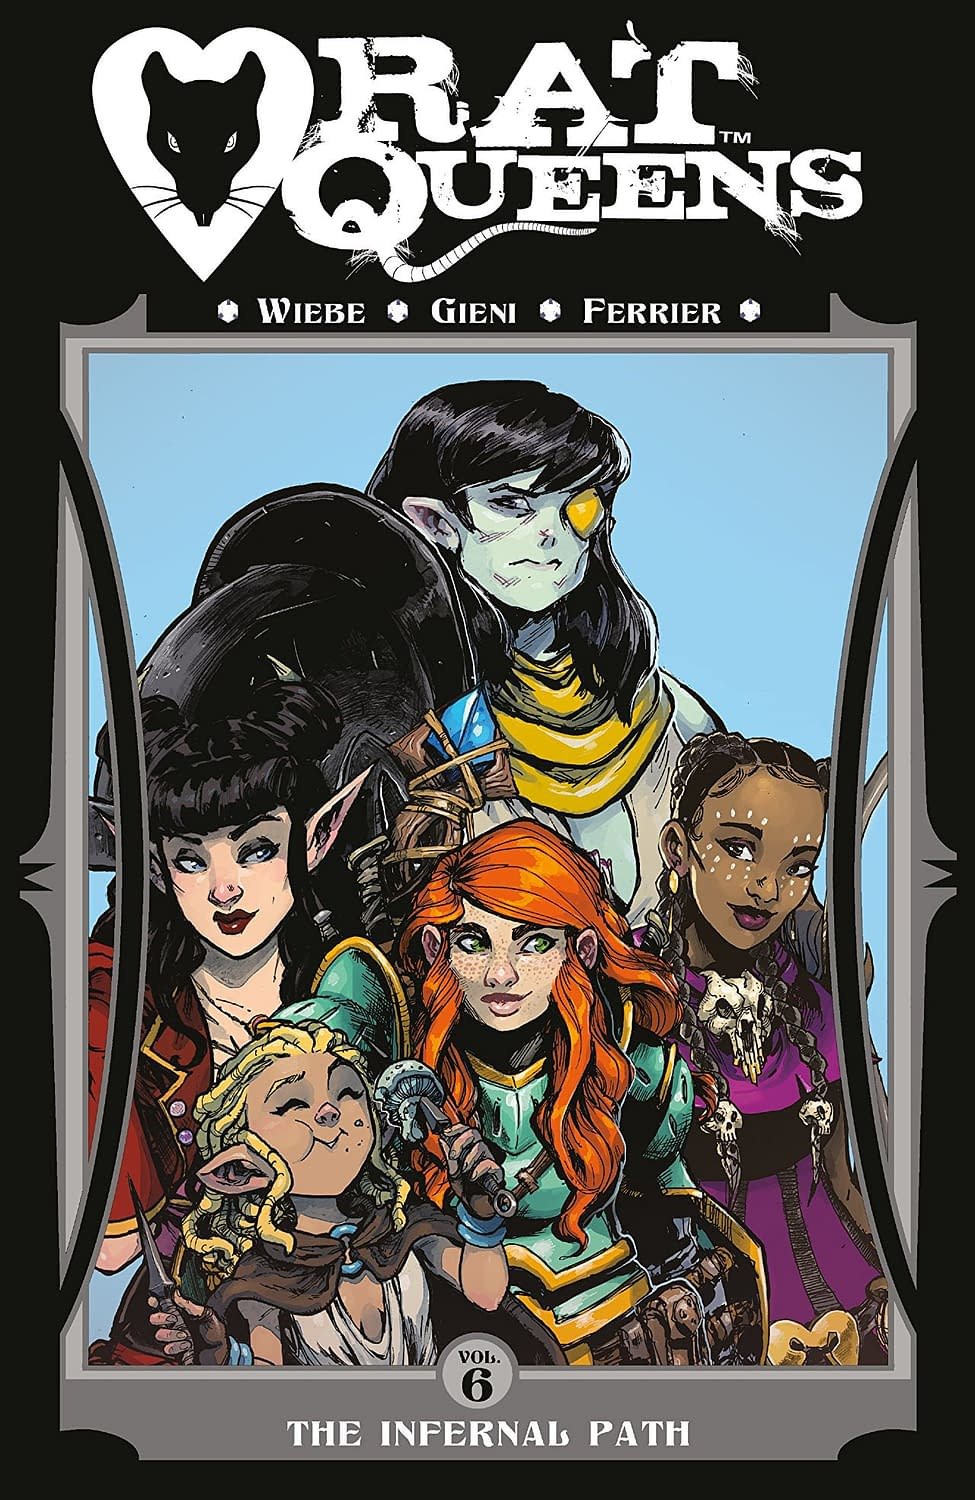 'Rat Queens Volume 6: The Infernal Path' Brings on the Ick Factor (REVIEW)